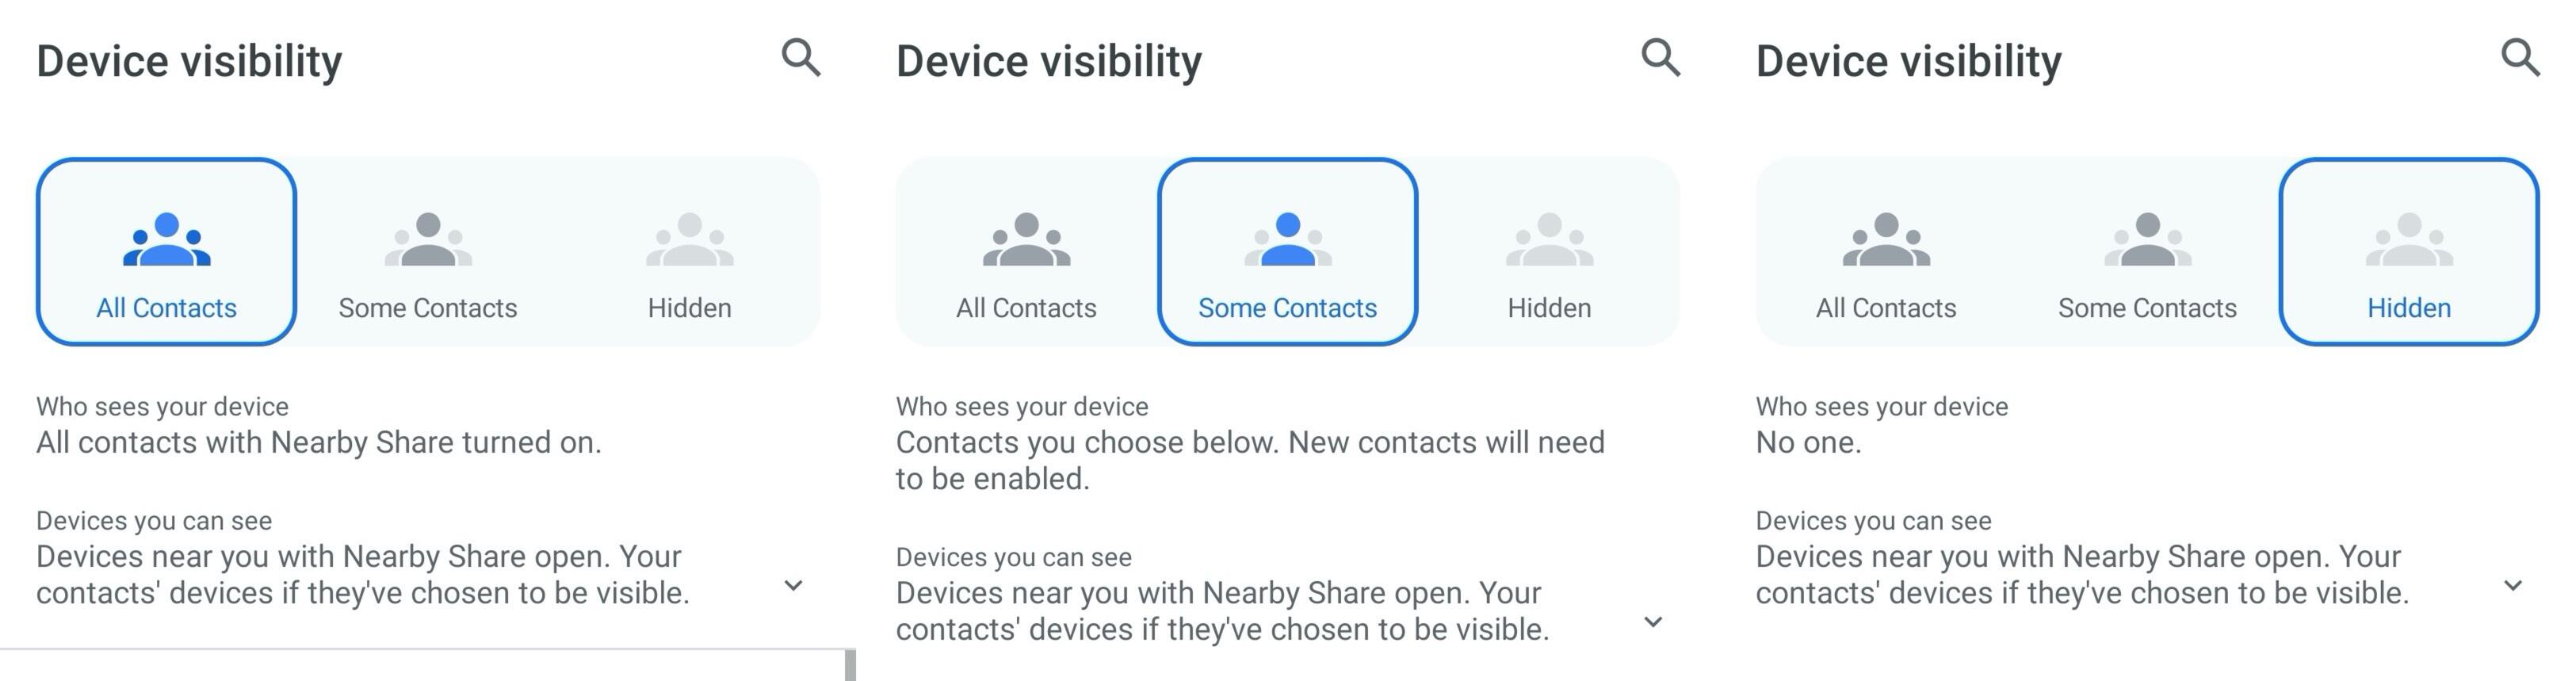 nearby-sharing-device-visiblity